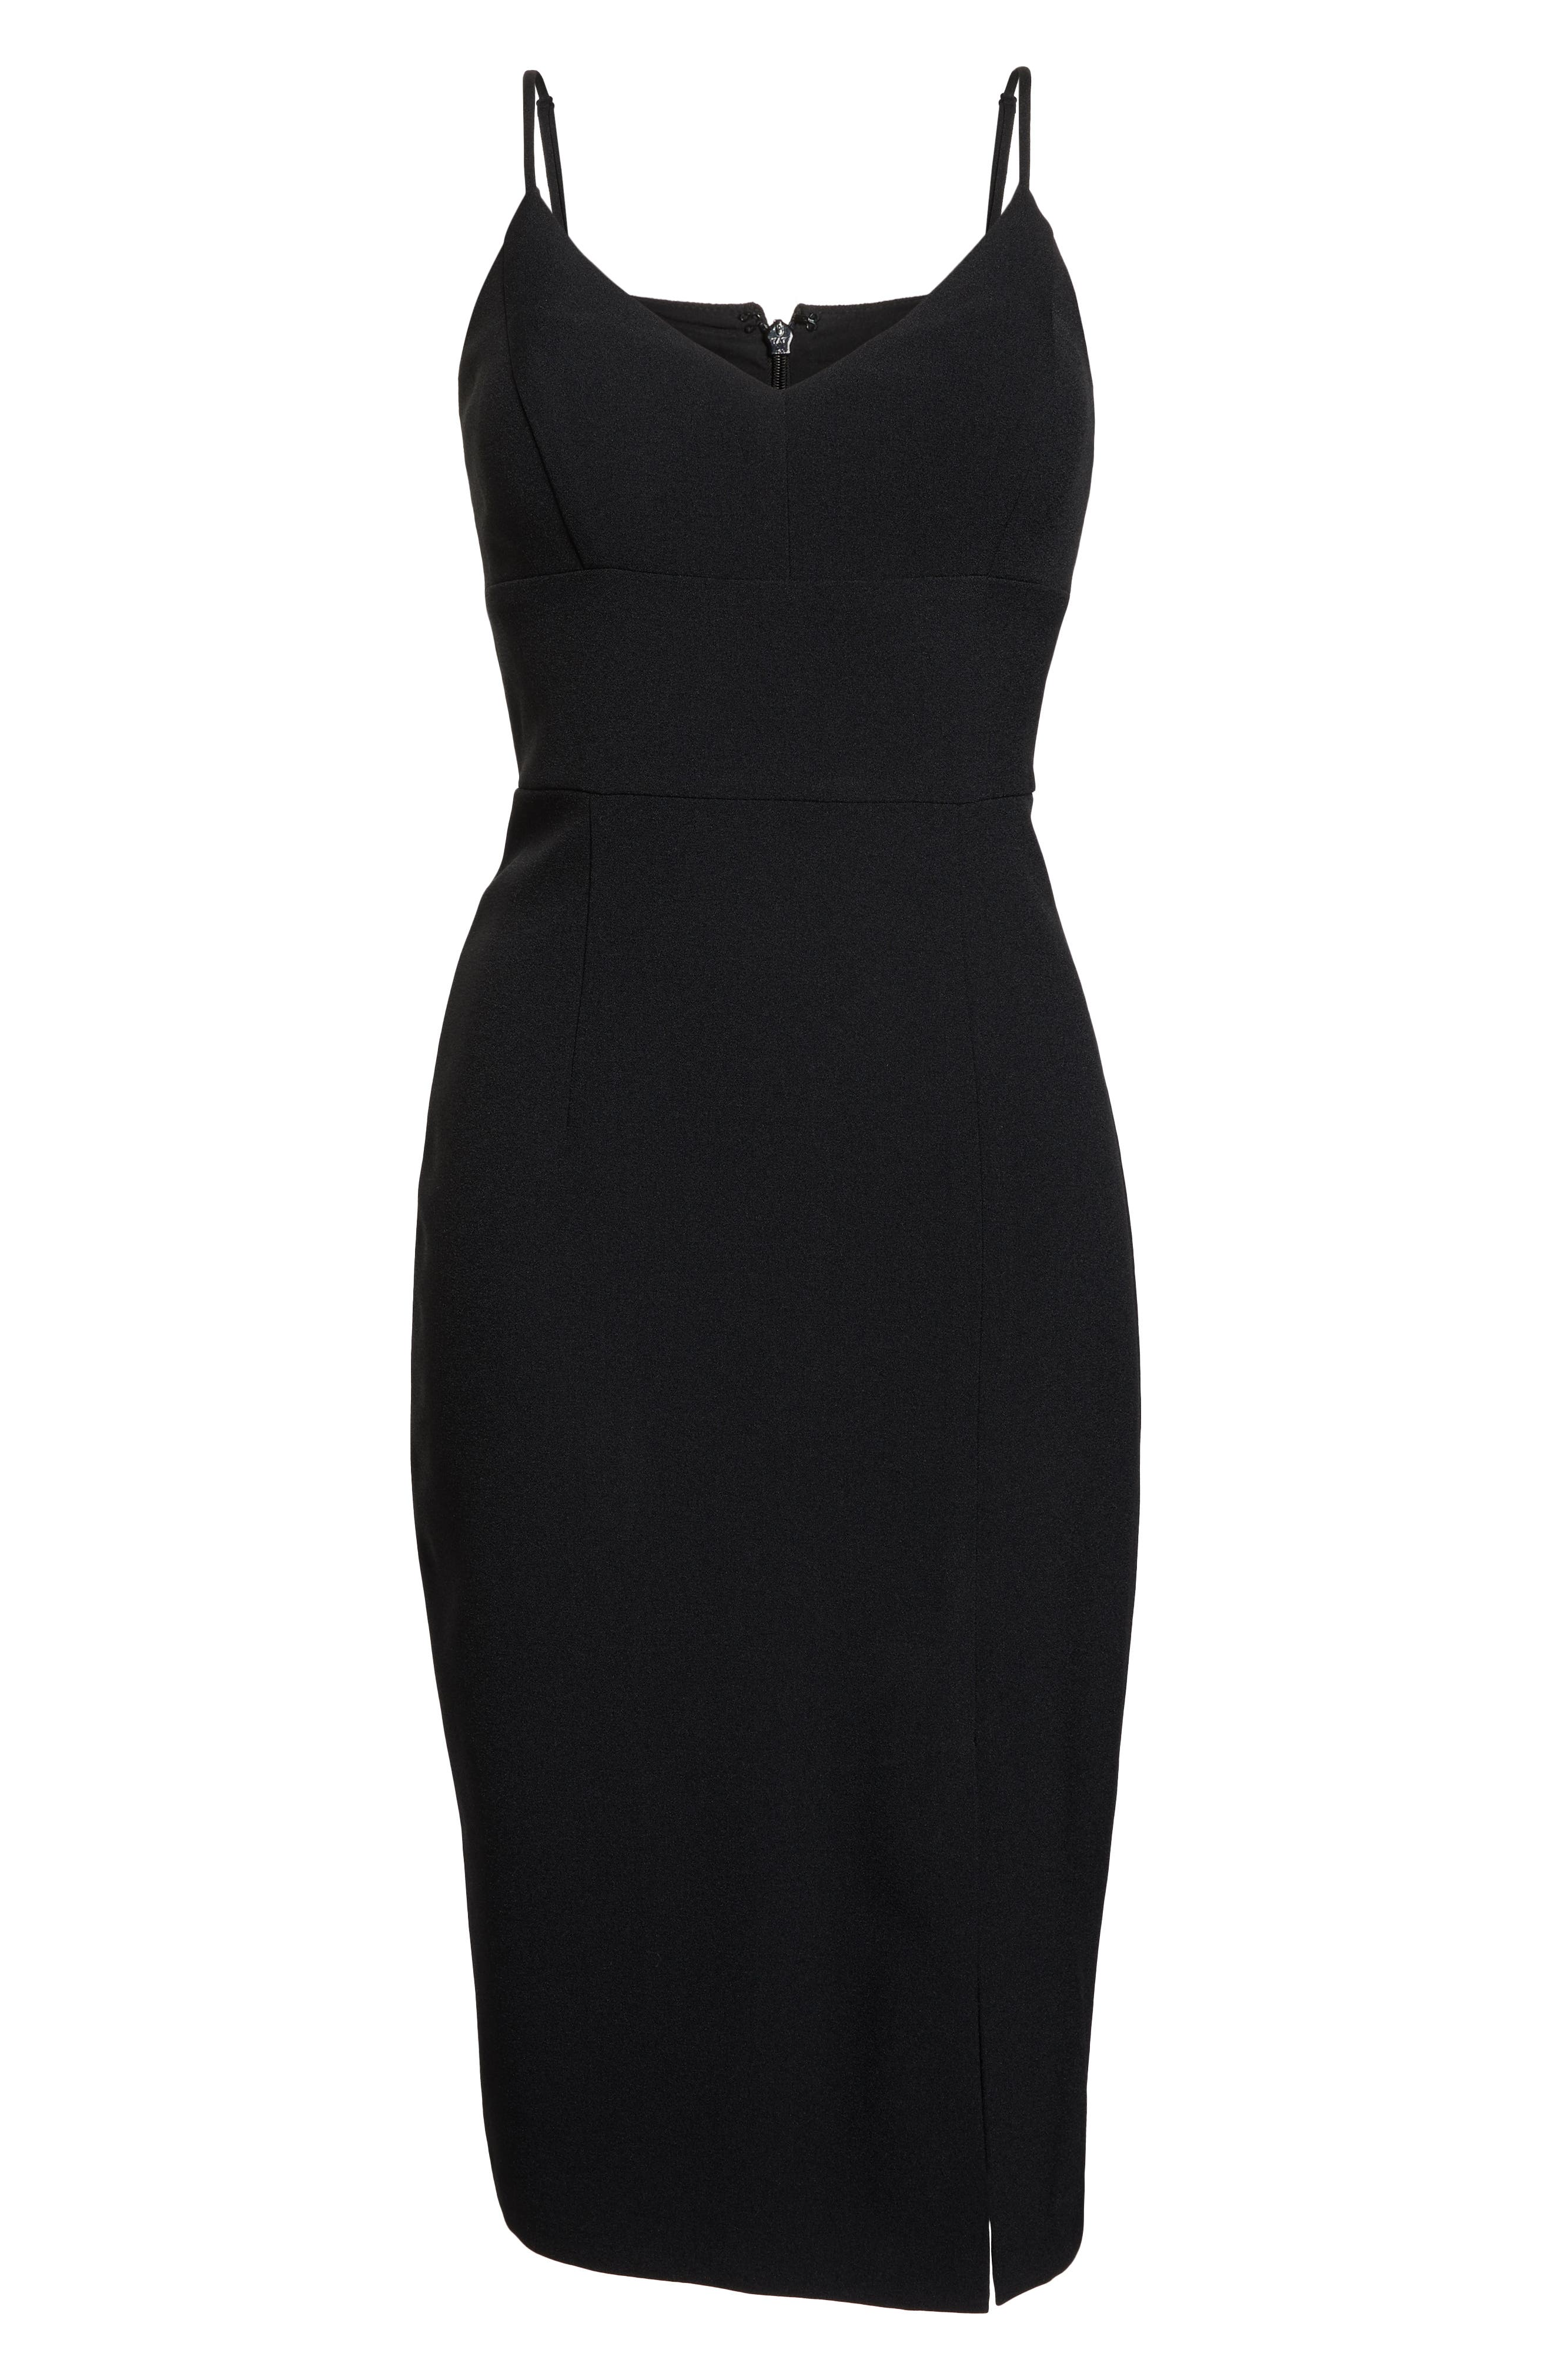 Sleeveless Cocktail Dress,                             Alternate thumbnail 7, color,                             BLACK